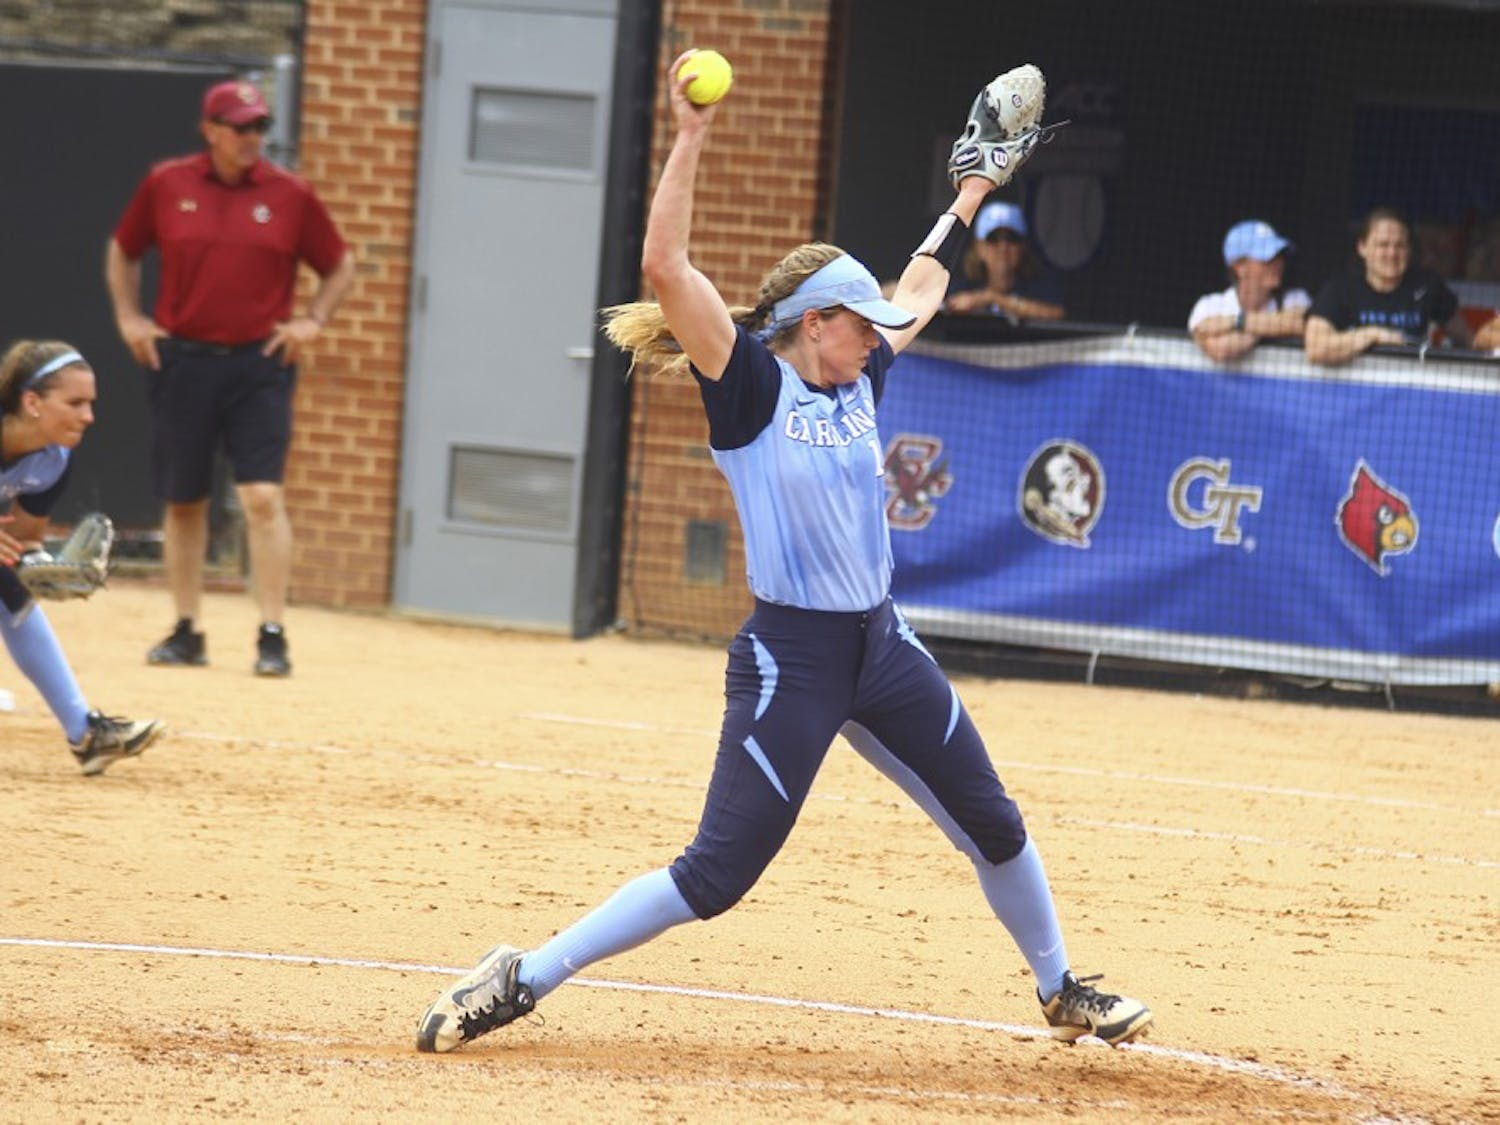 Junior Kendra Lynch pitches in the ACC Softball Tournament held in Raleigh on Thursday